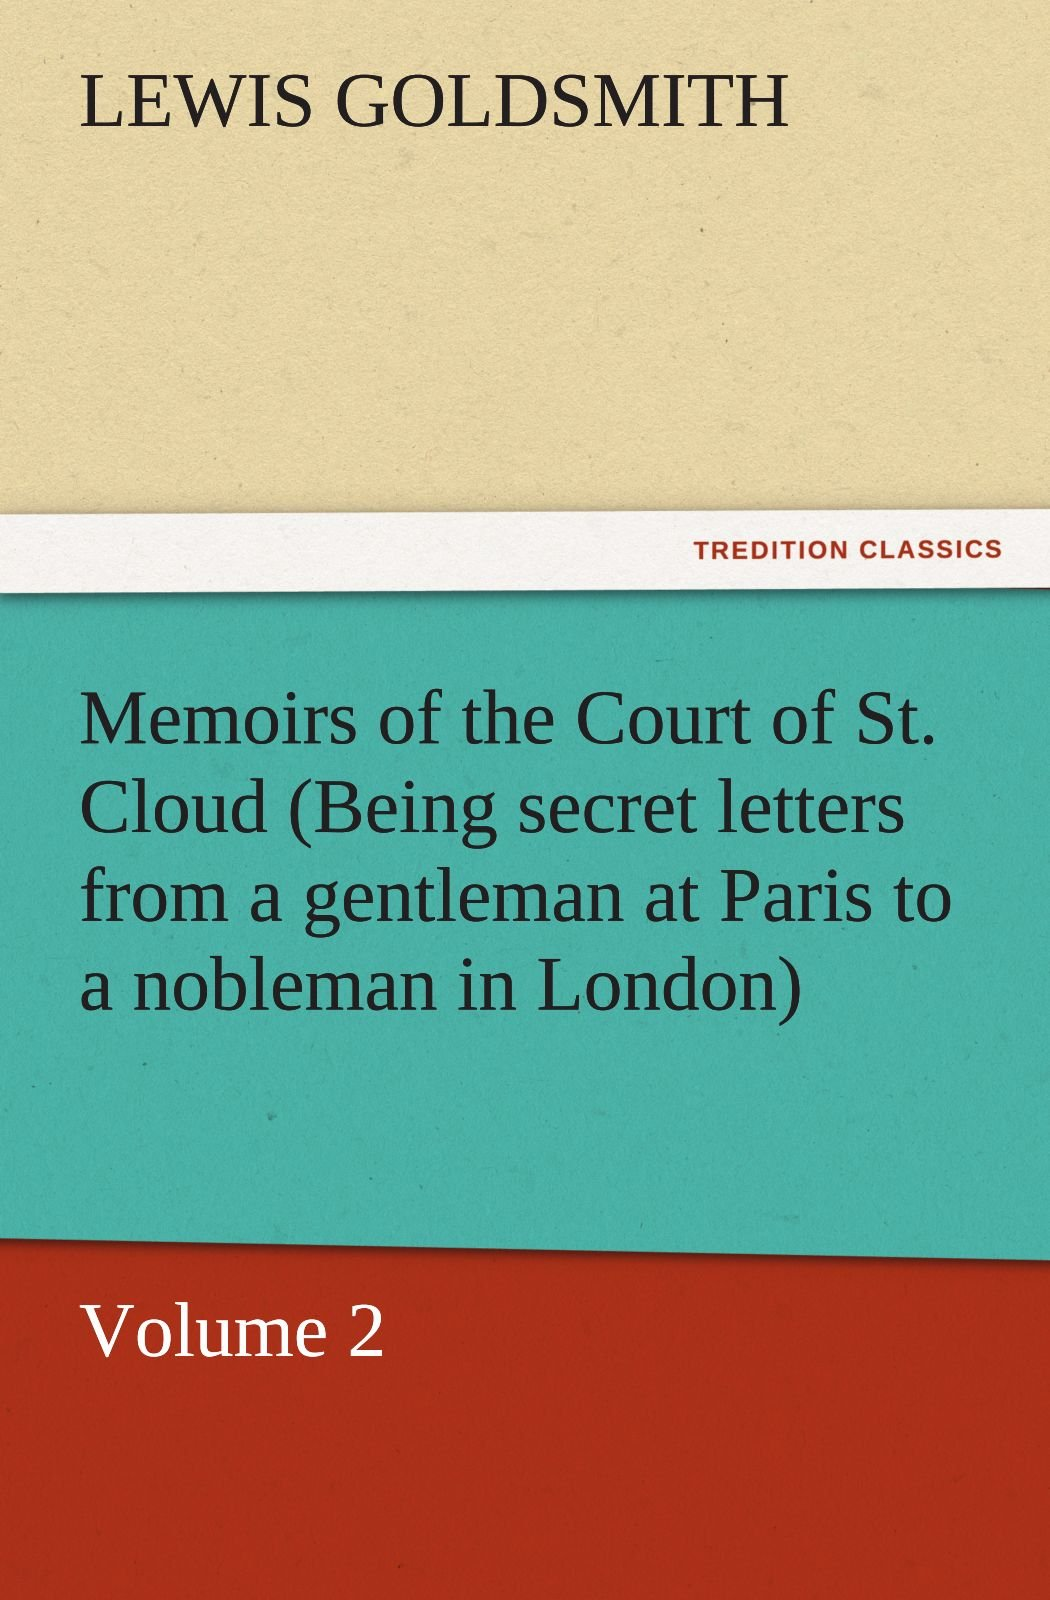 Download Memoirs of the Court of St. Cloud (Being secret letters from a gentleman at Paris to a nobleman in London) — Volume 2 (TREDITION CLASSICS) pdf epub